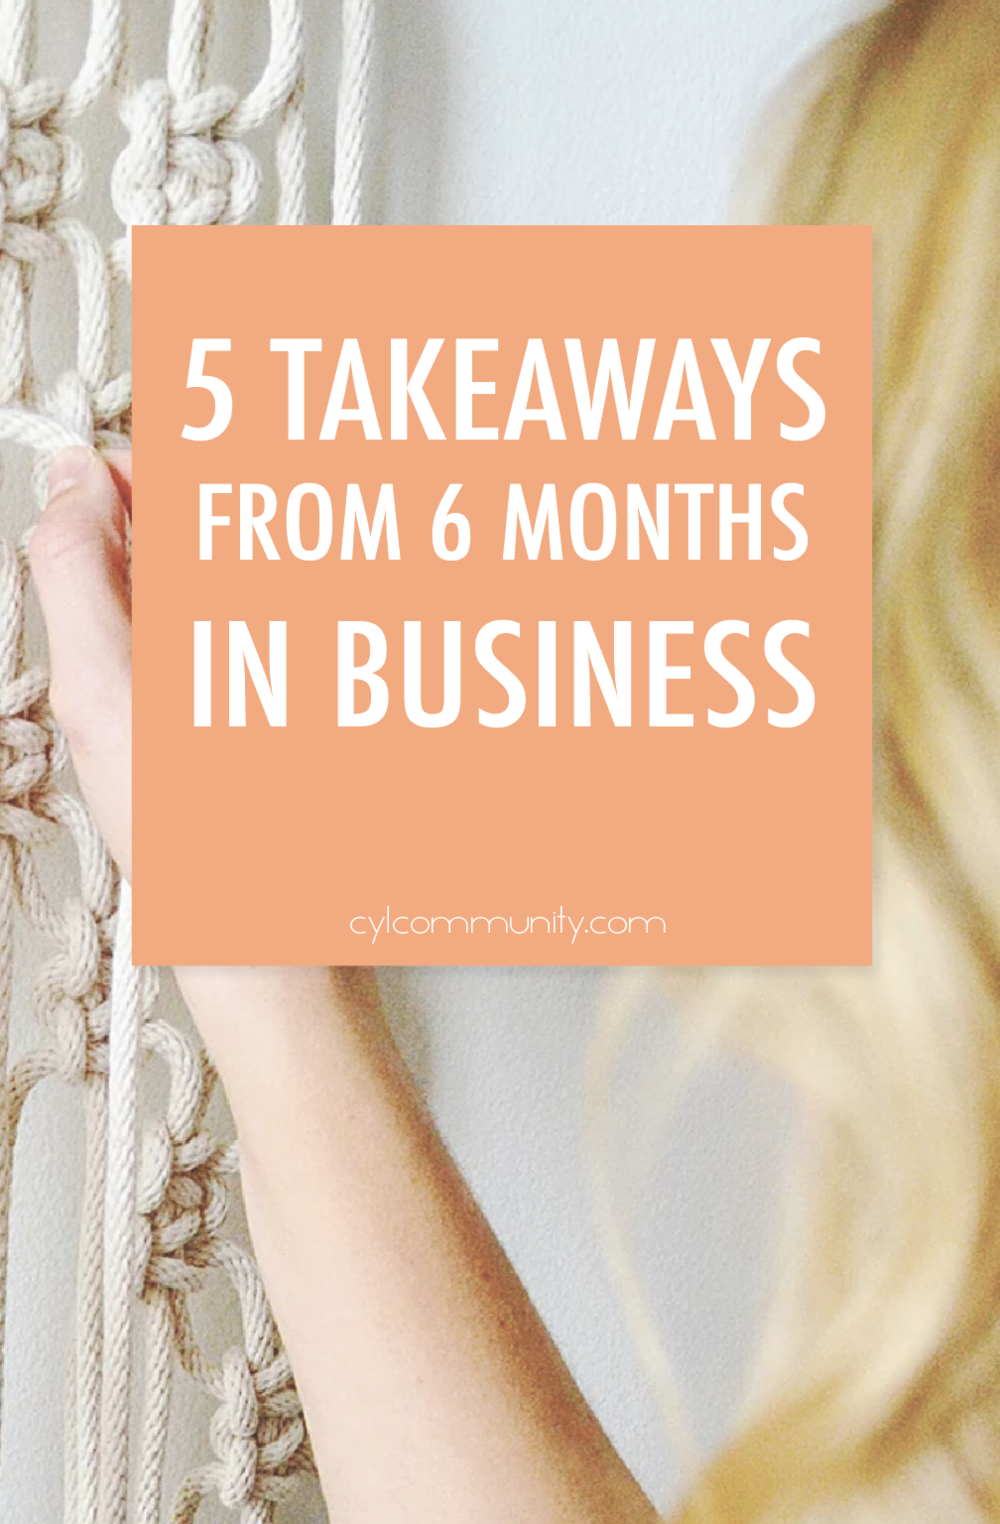 5_takeaways_business